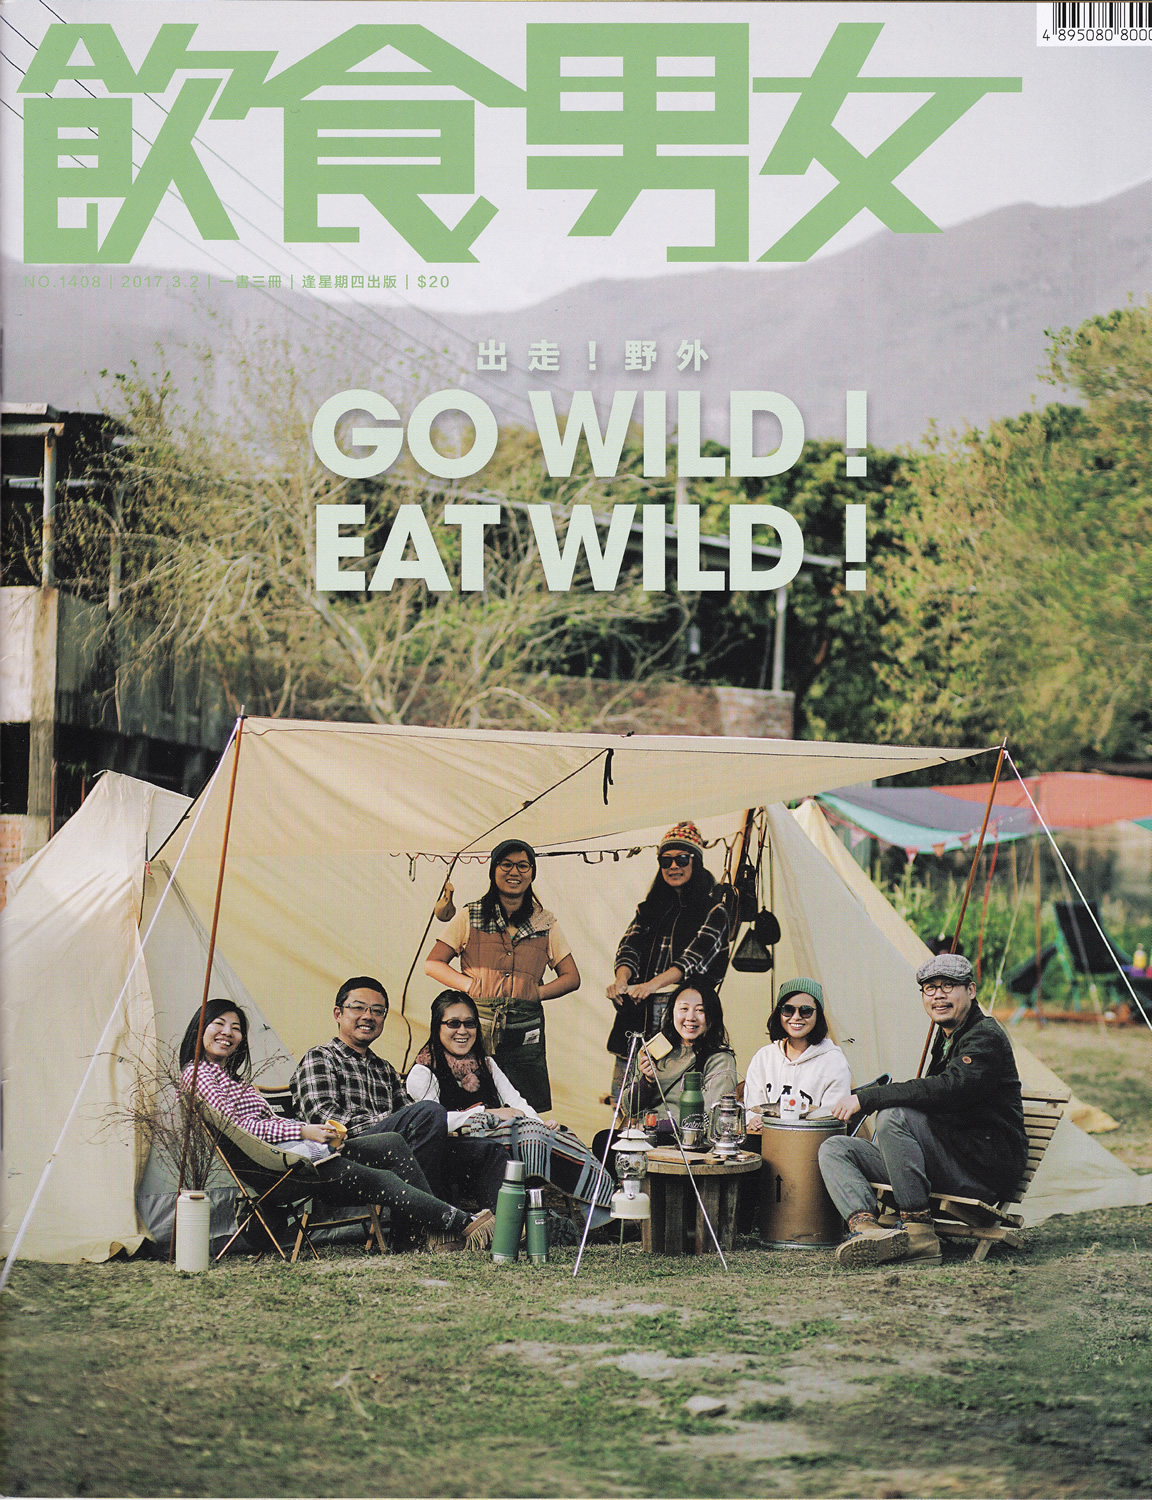 ISSOを香港の情報誌『飲食男女』にご掲載いただきました/ Appears on EAT&TRAVEL WEEKLY